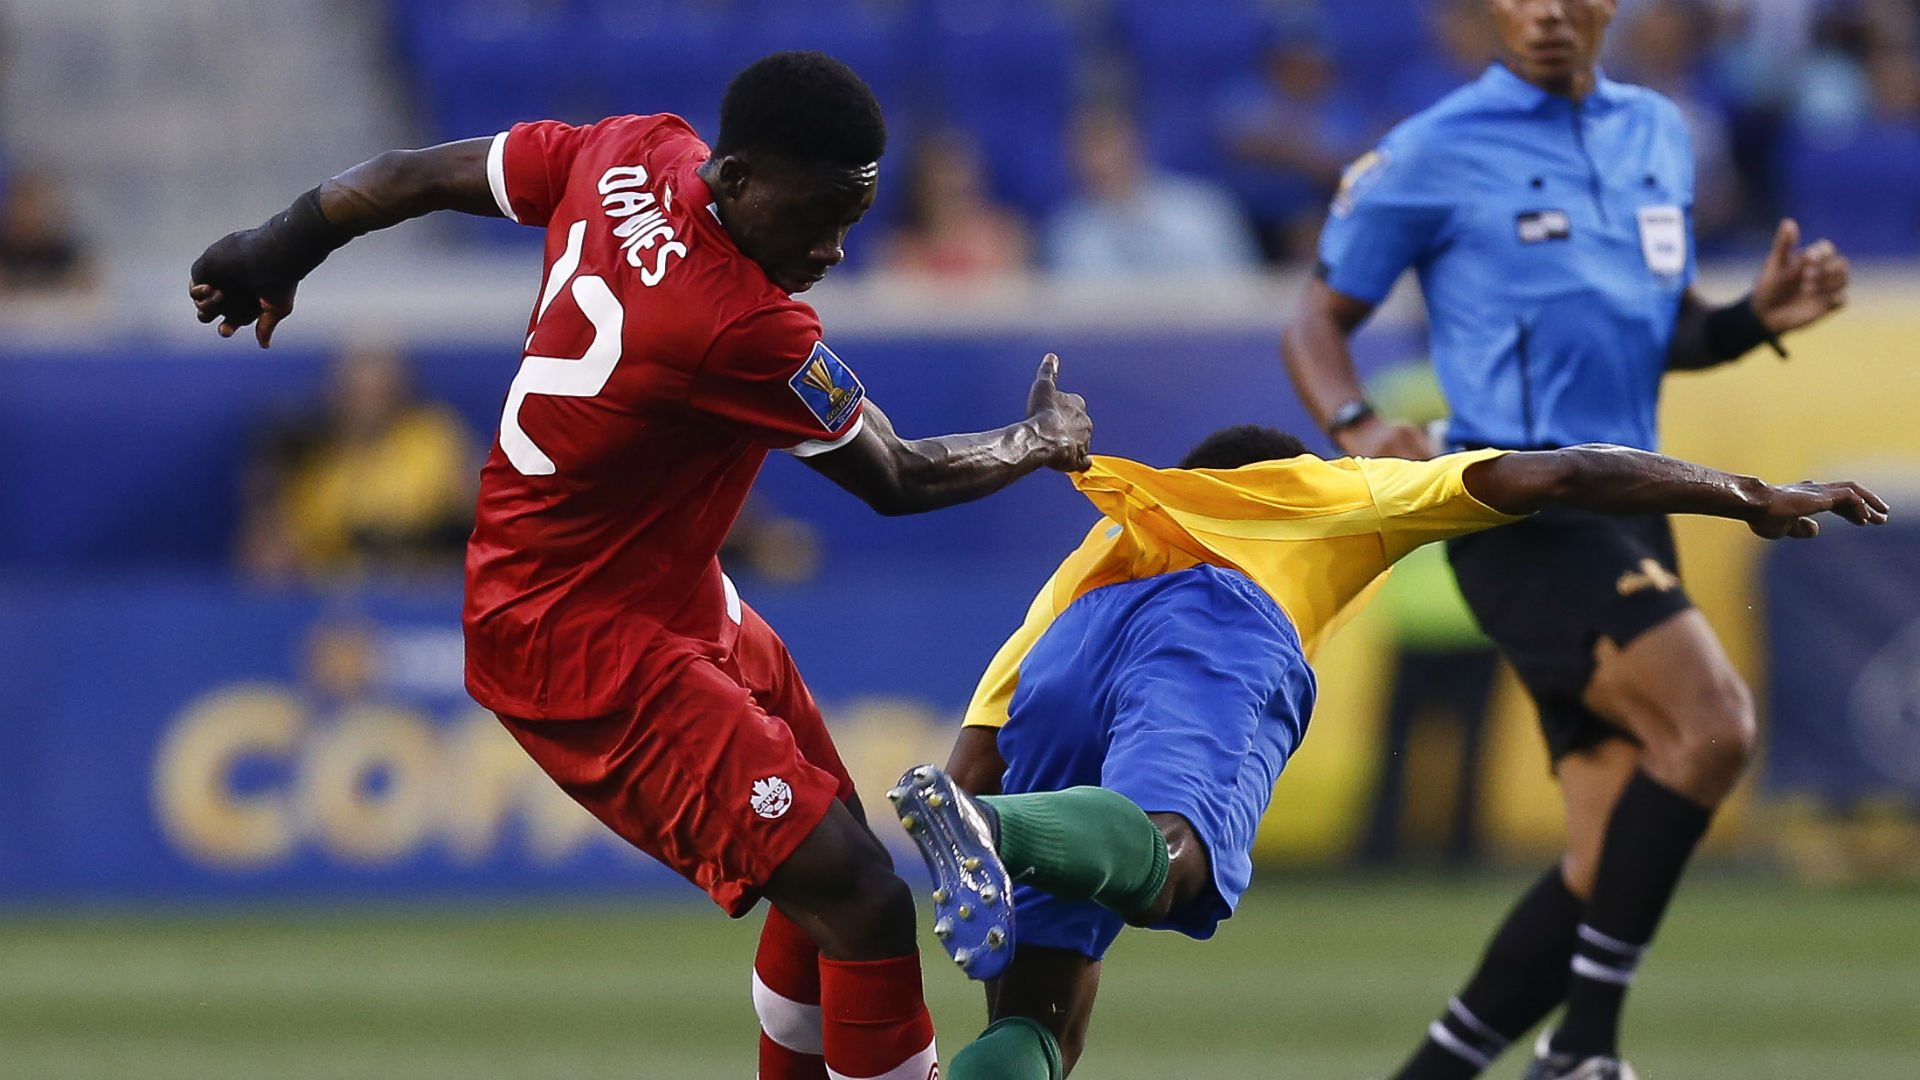 Alphonso-davies-loic-baal-canada-french-guiana-gold-cup_1xbb0noxm6cnh1r45vc8o1hmyt